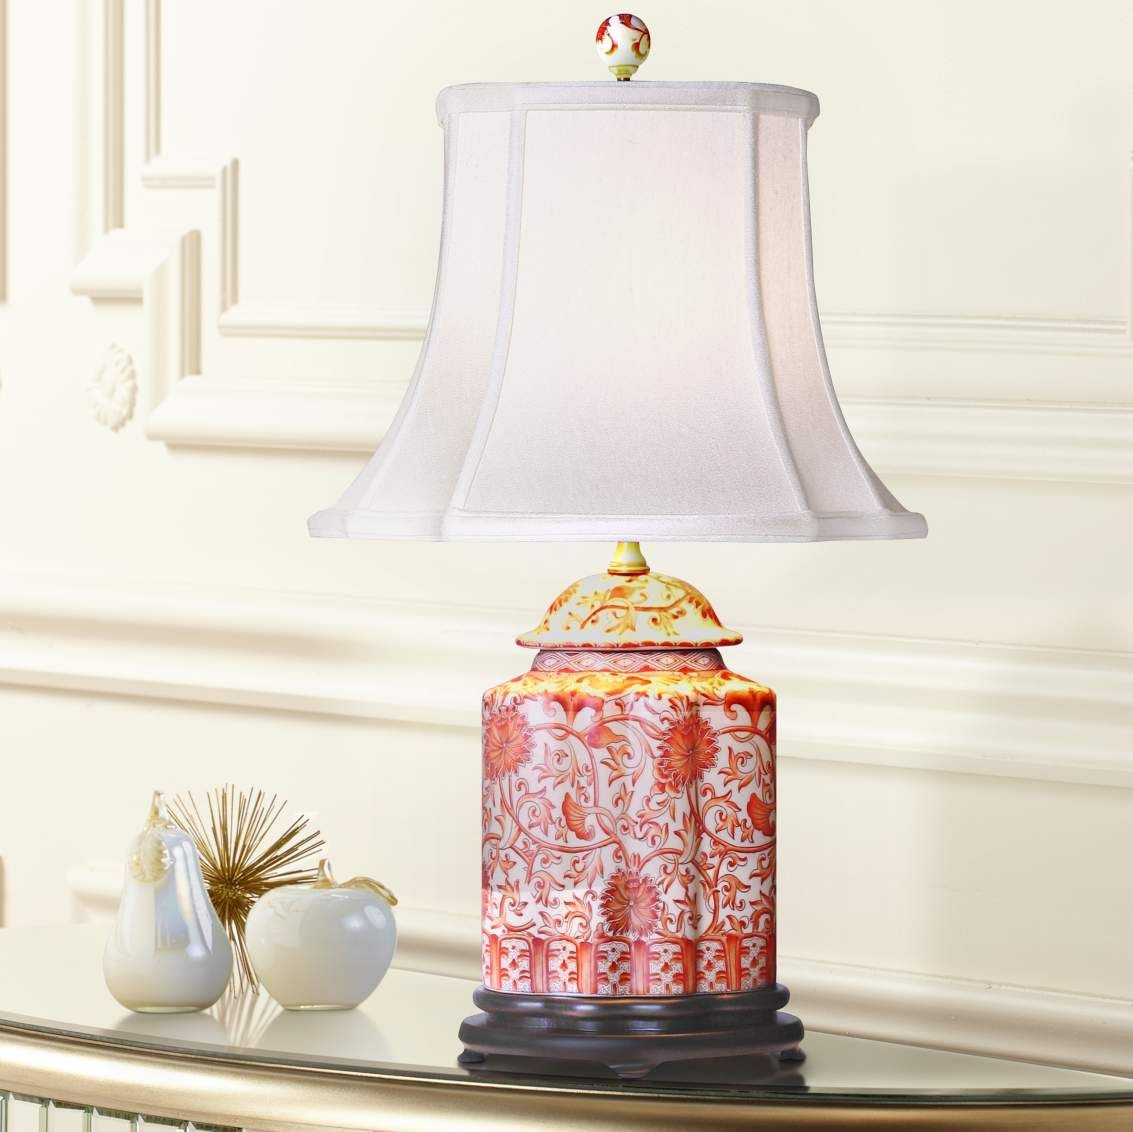 Peach Coral Home Coral Lamp Wall Mounted Lamps Coral Table